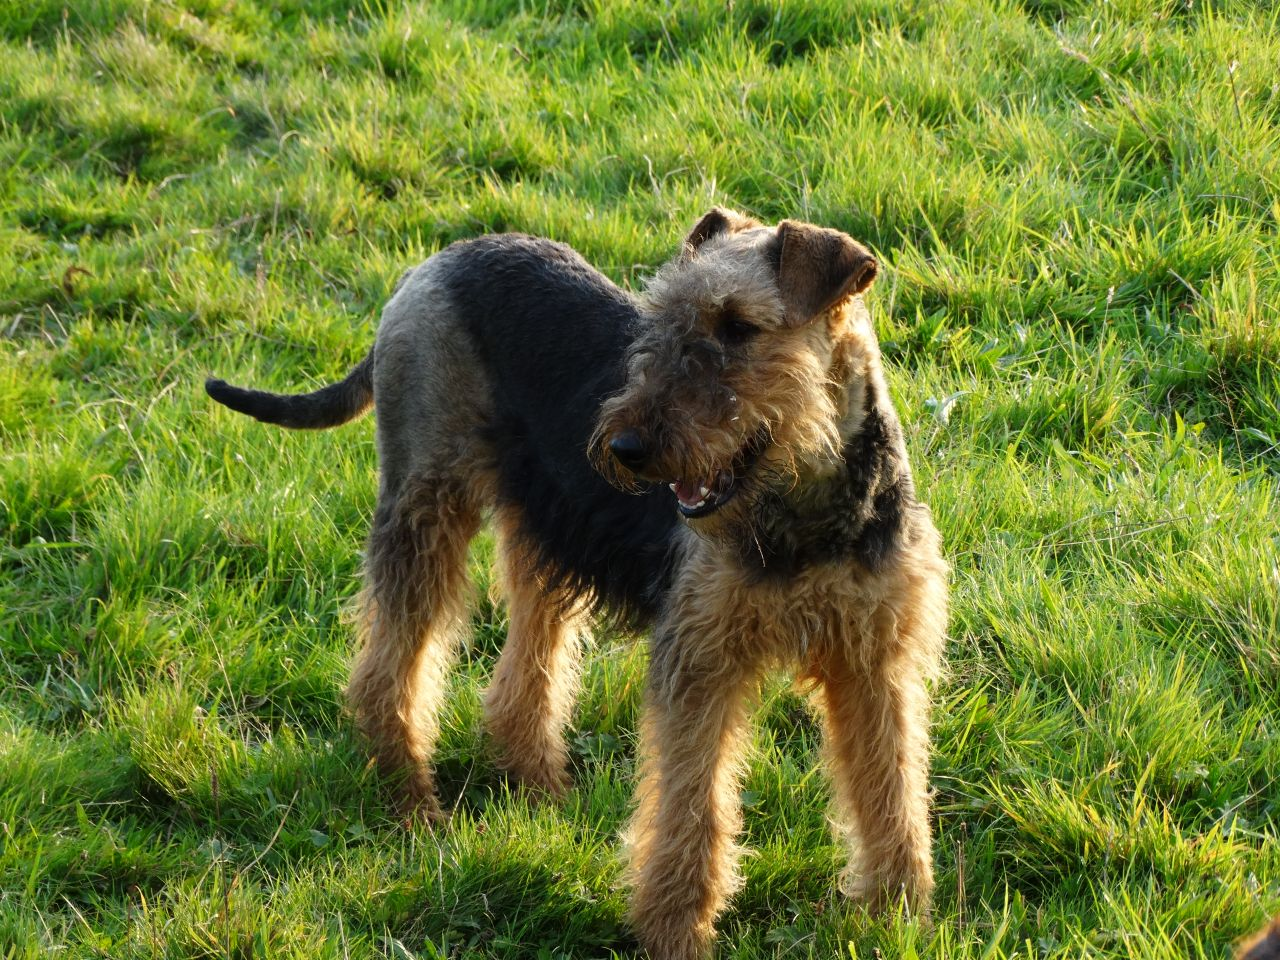 Airedale Terrier Puppies: Airedale Terrier Puppies Blackburn Breed